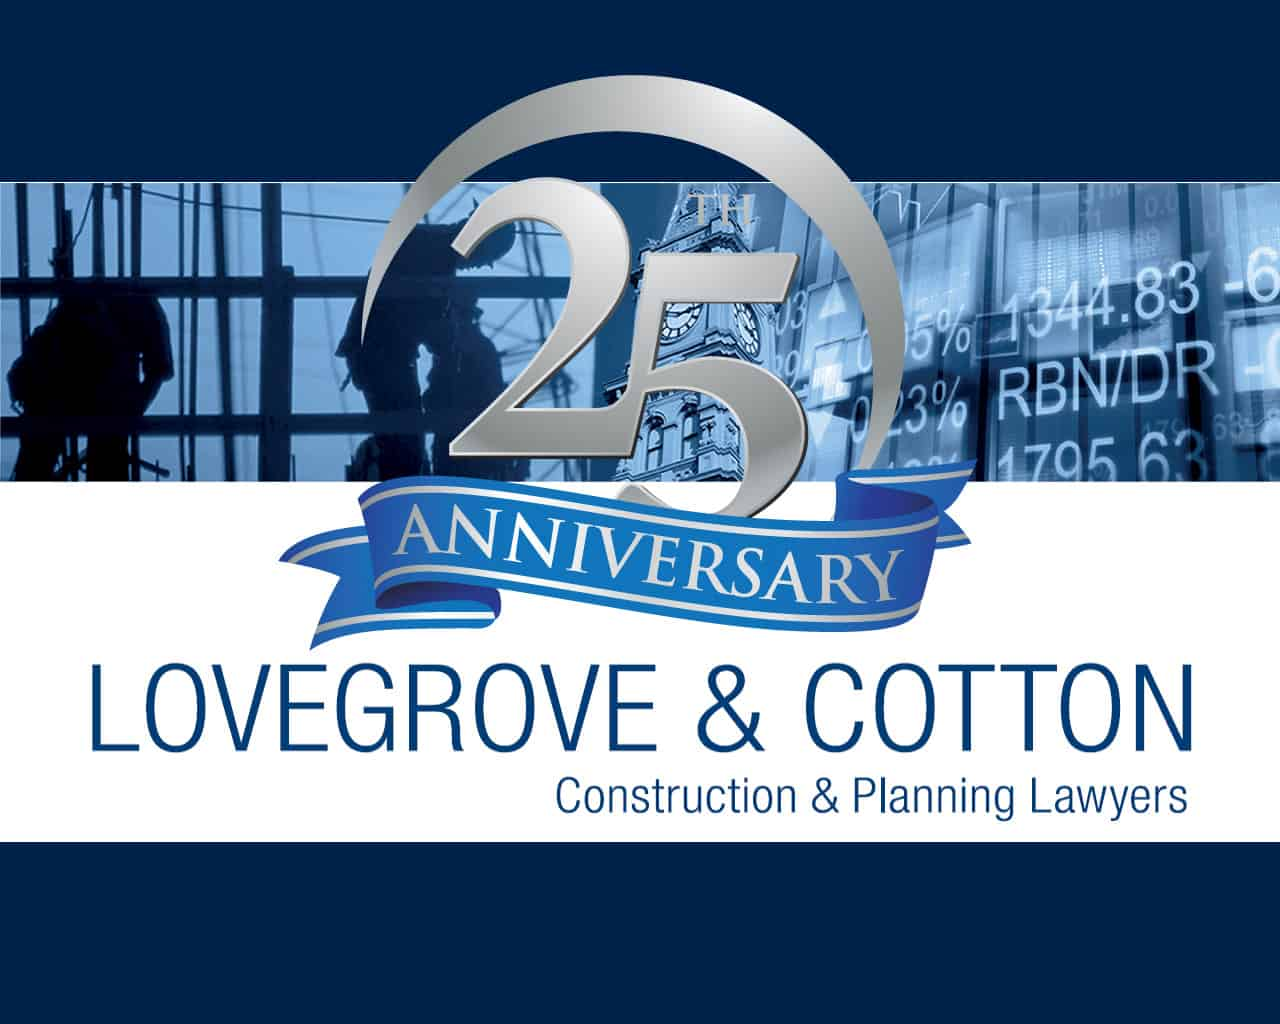 Lovegrove & Cotton – 25 Year Corporate Anniversary